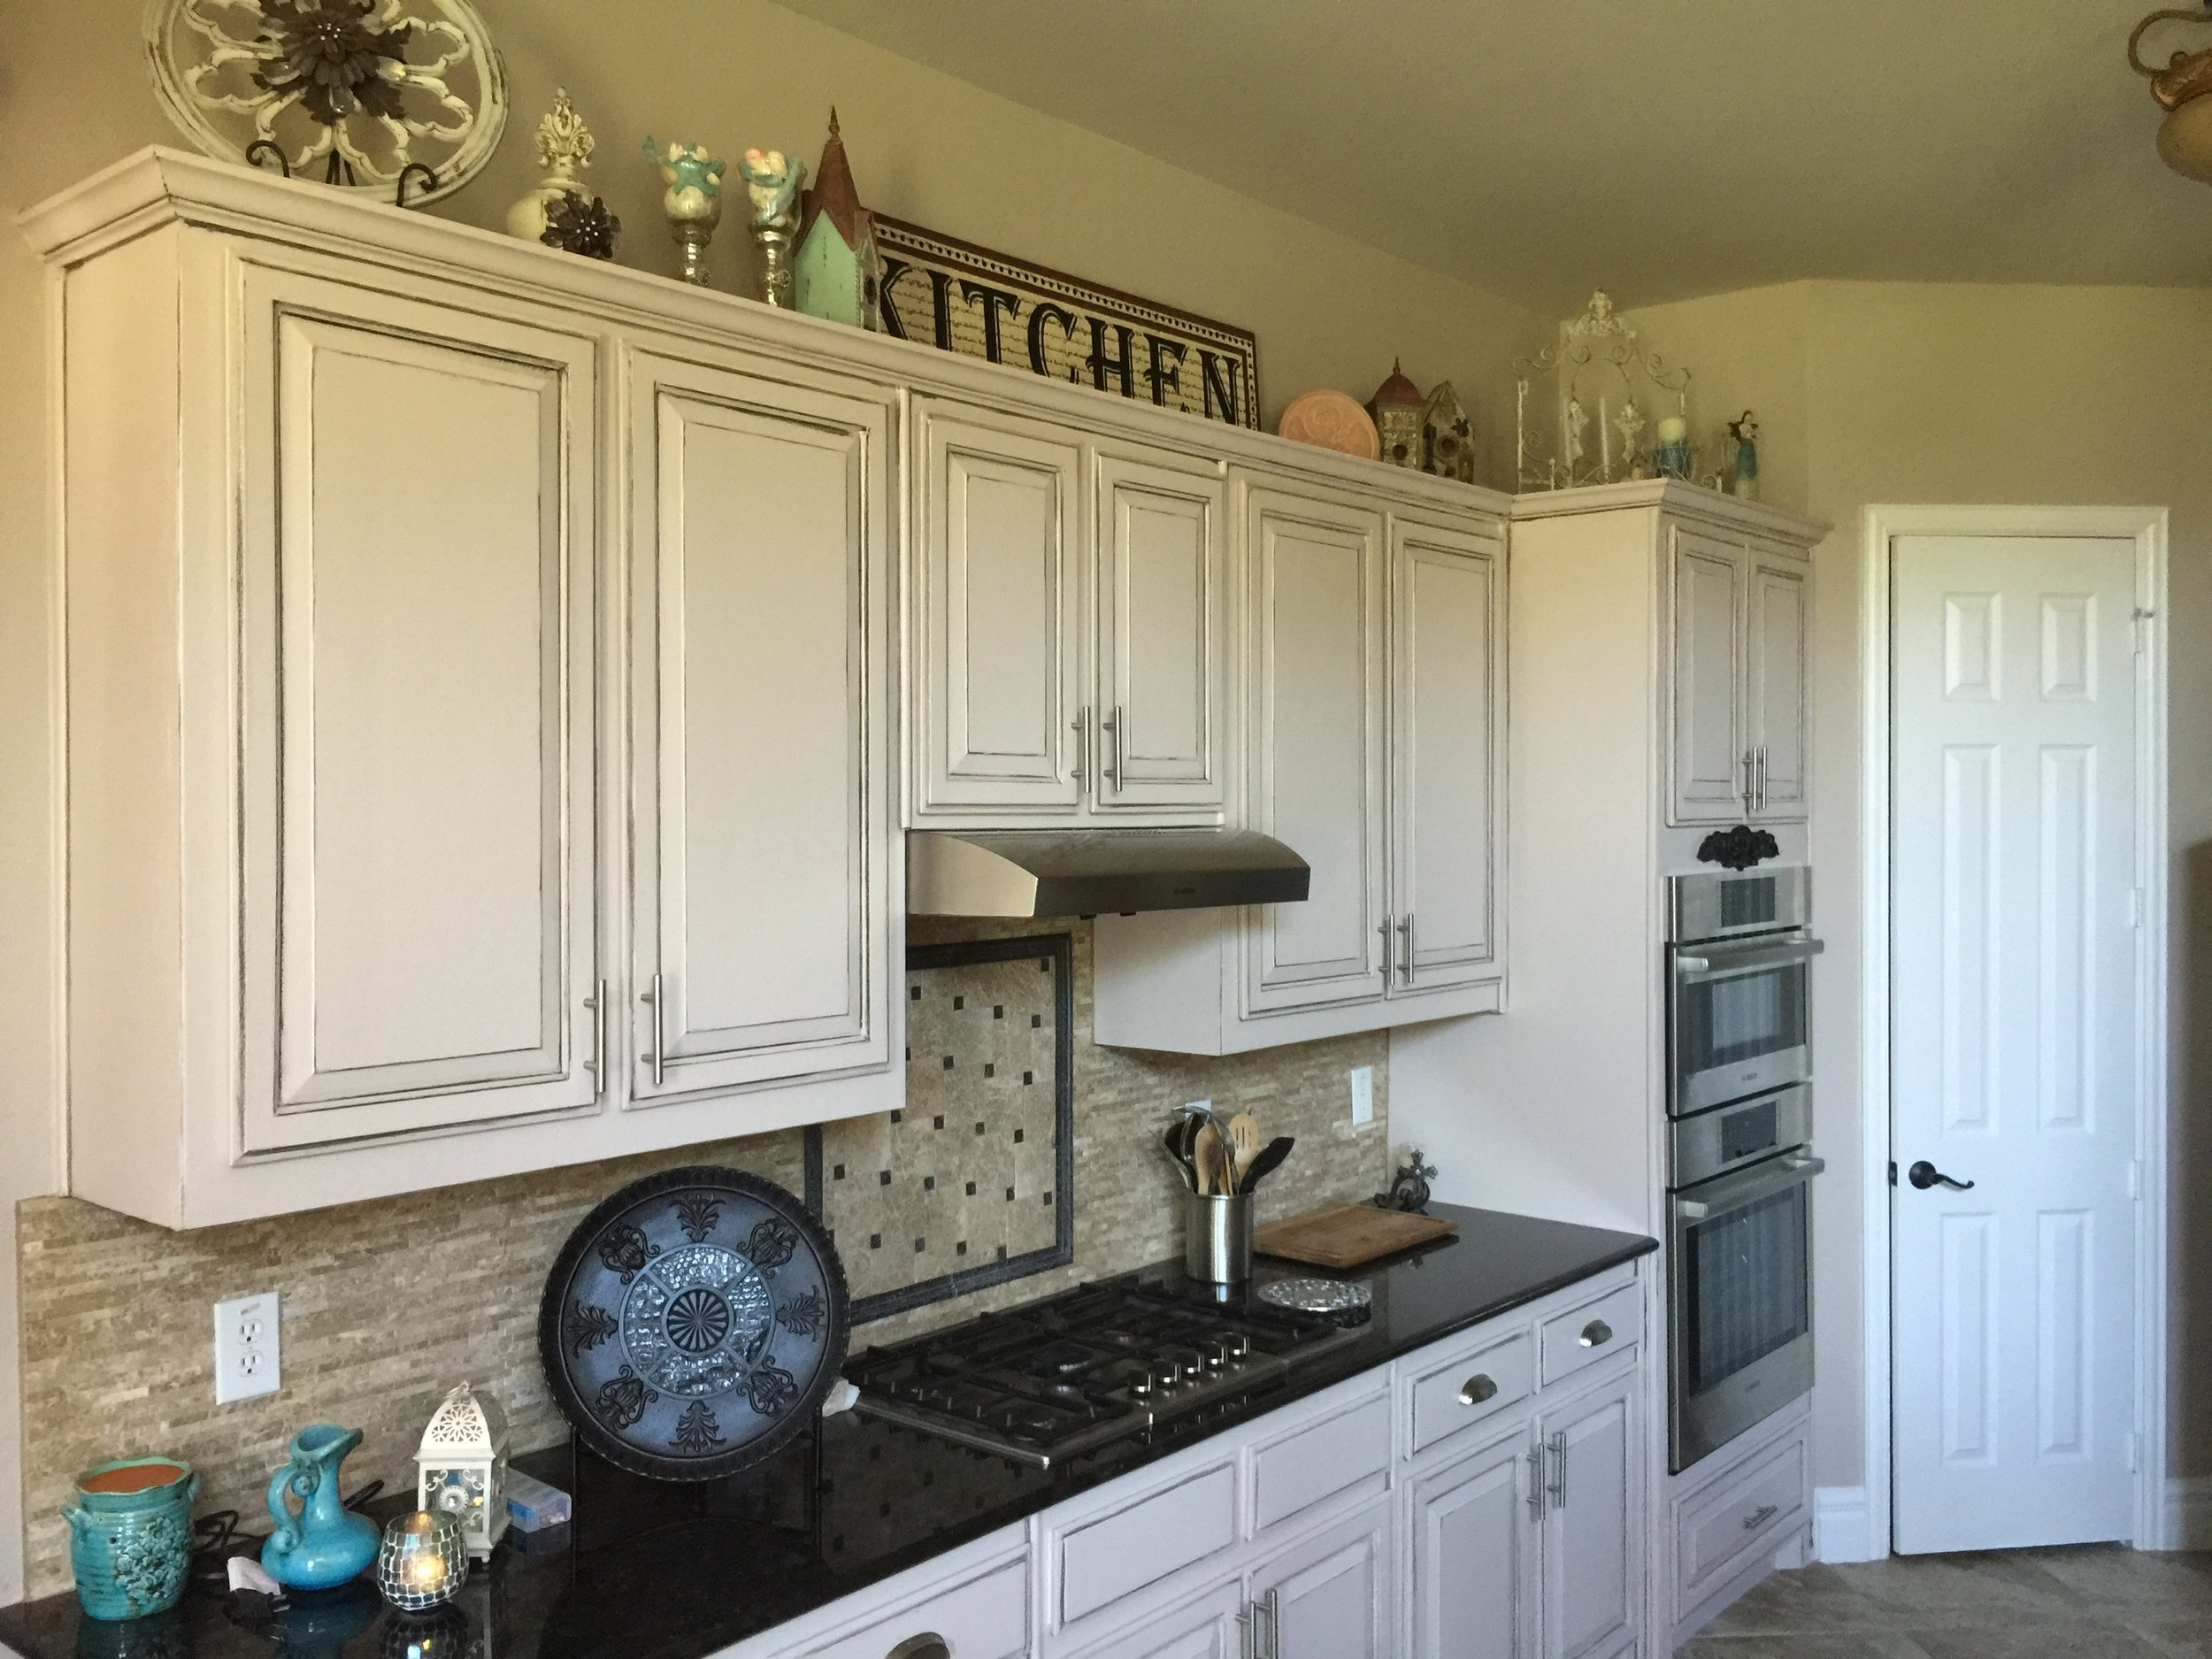 Tilia Design Co. Kitchen Cabinet Painting